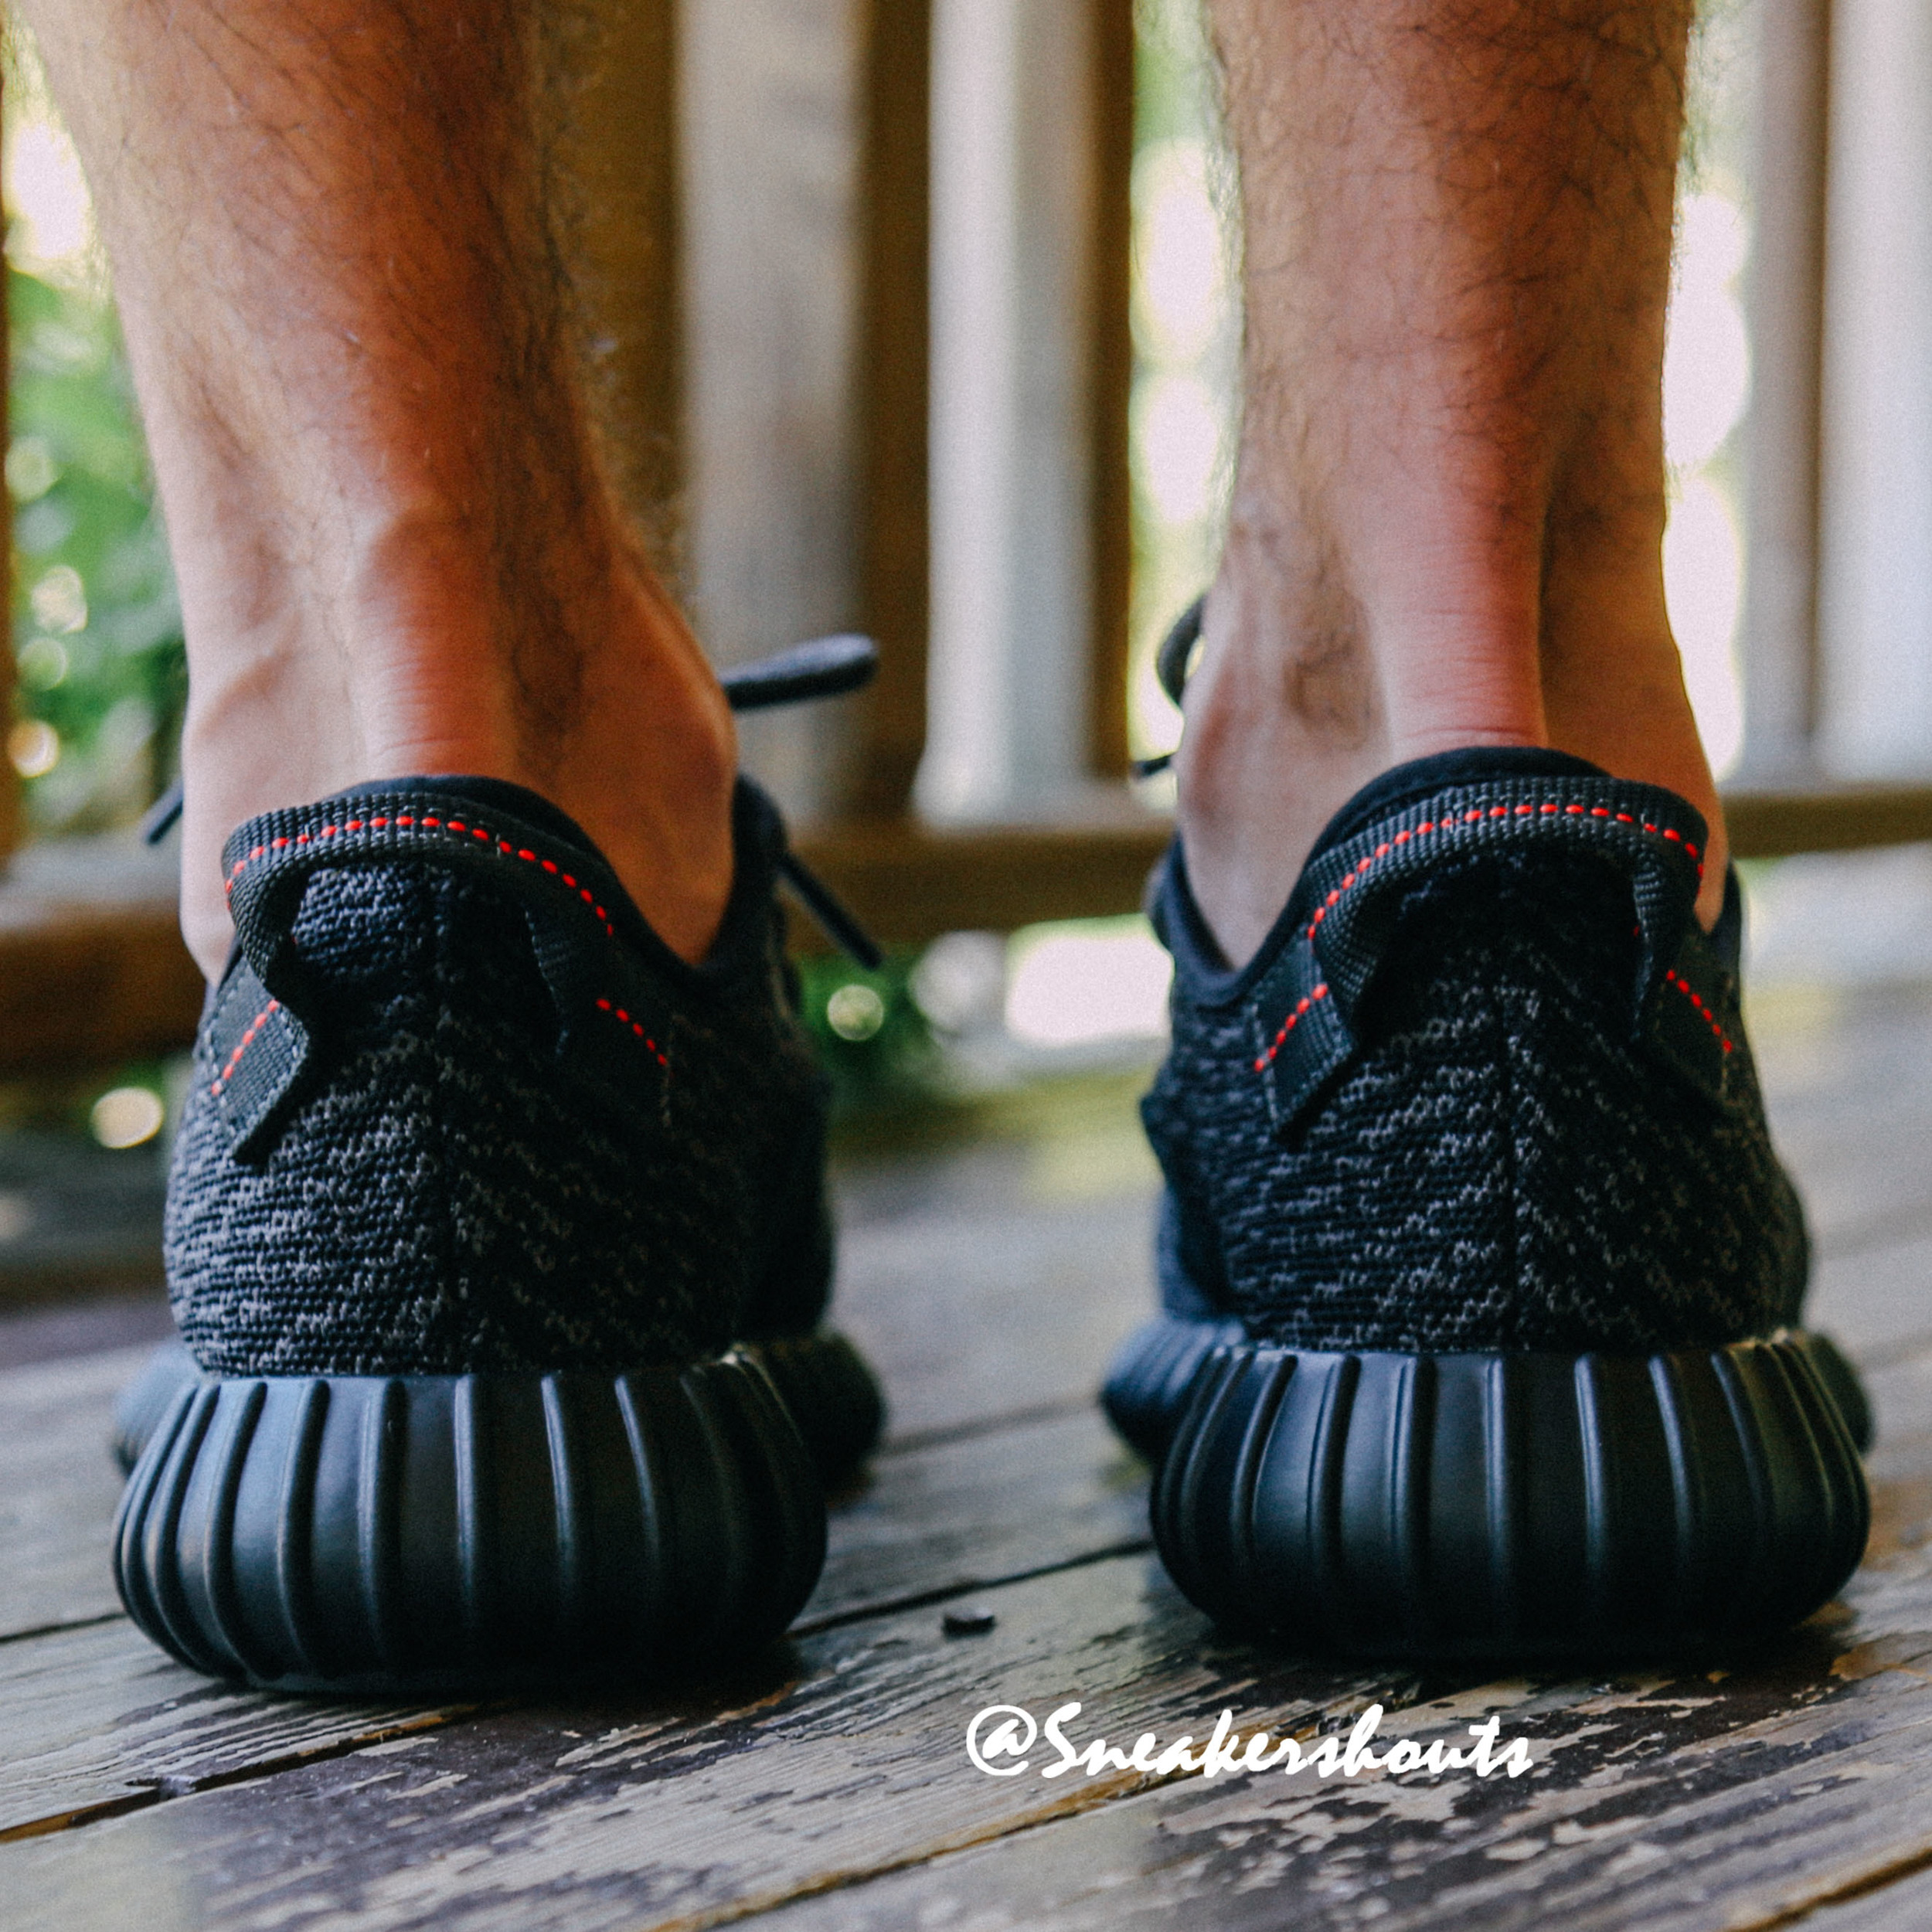 Adidas-Yeezy-350-Boost-Low-Black-3.jpg